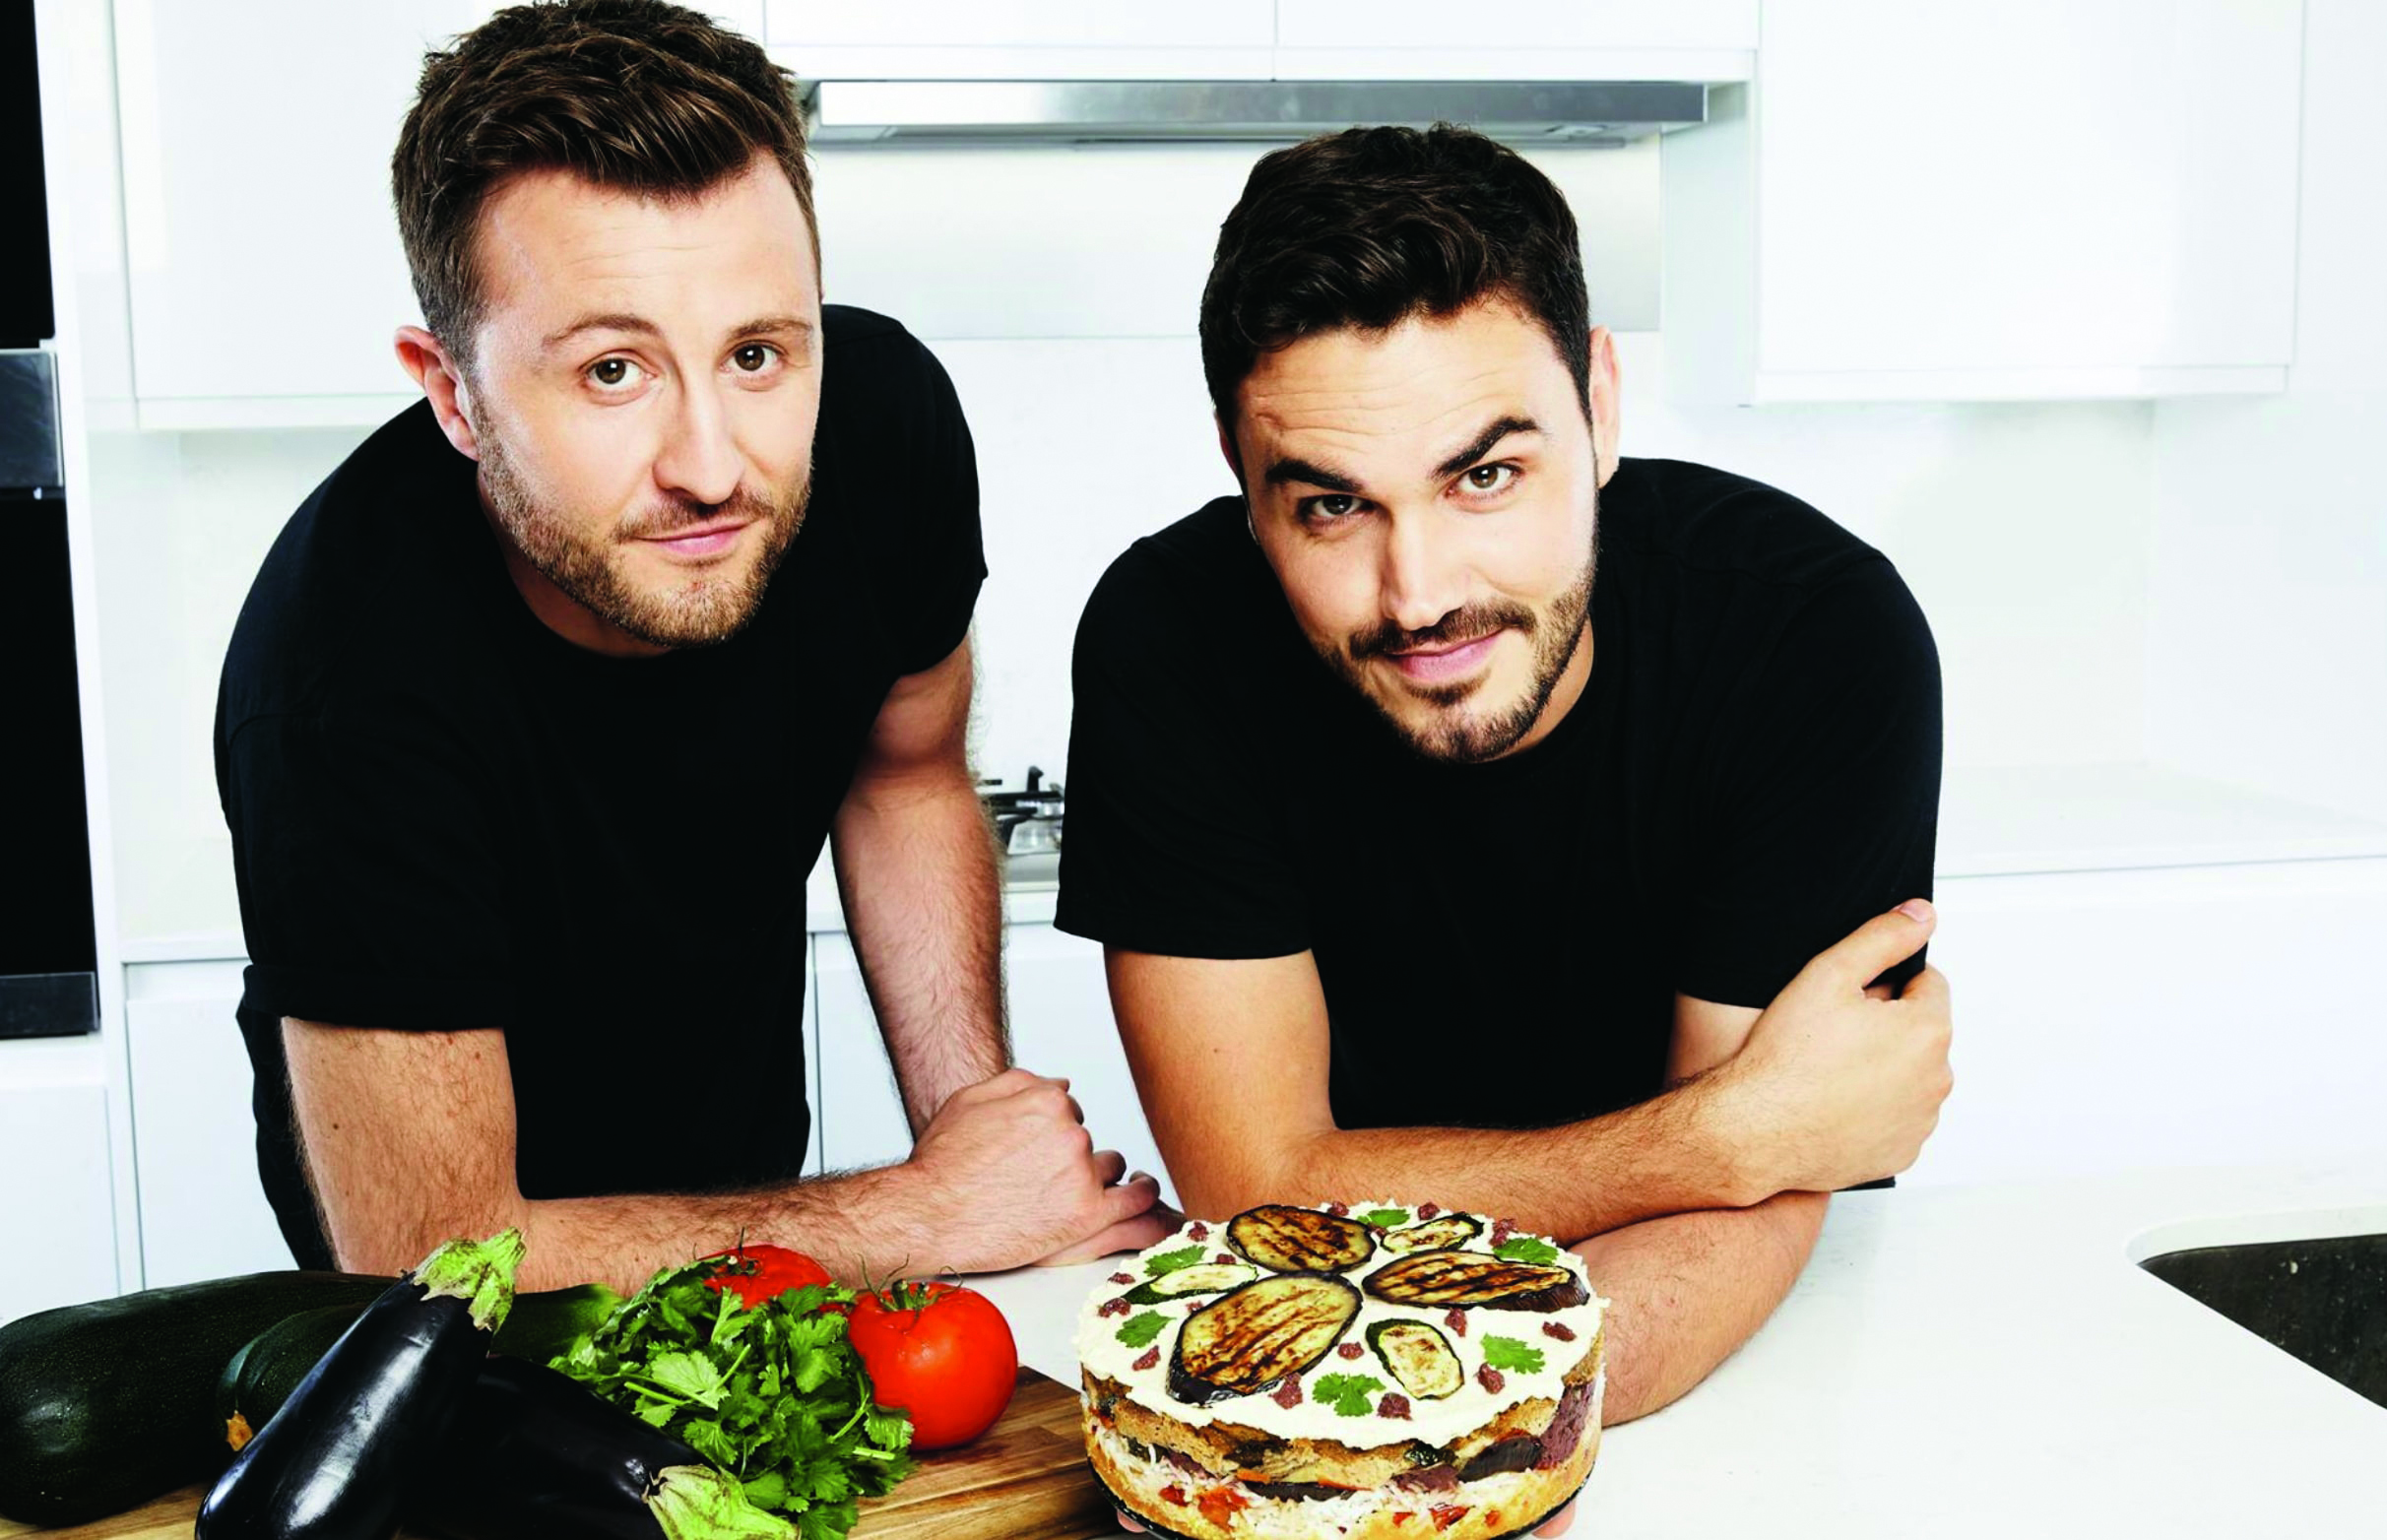 Online sensations Ian Thirsby, left, and Henry Firth attract millions of viewers each month with their vegan cookery show and a recipe book is now on its way